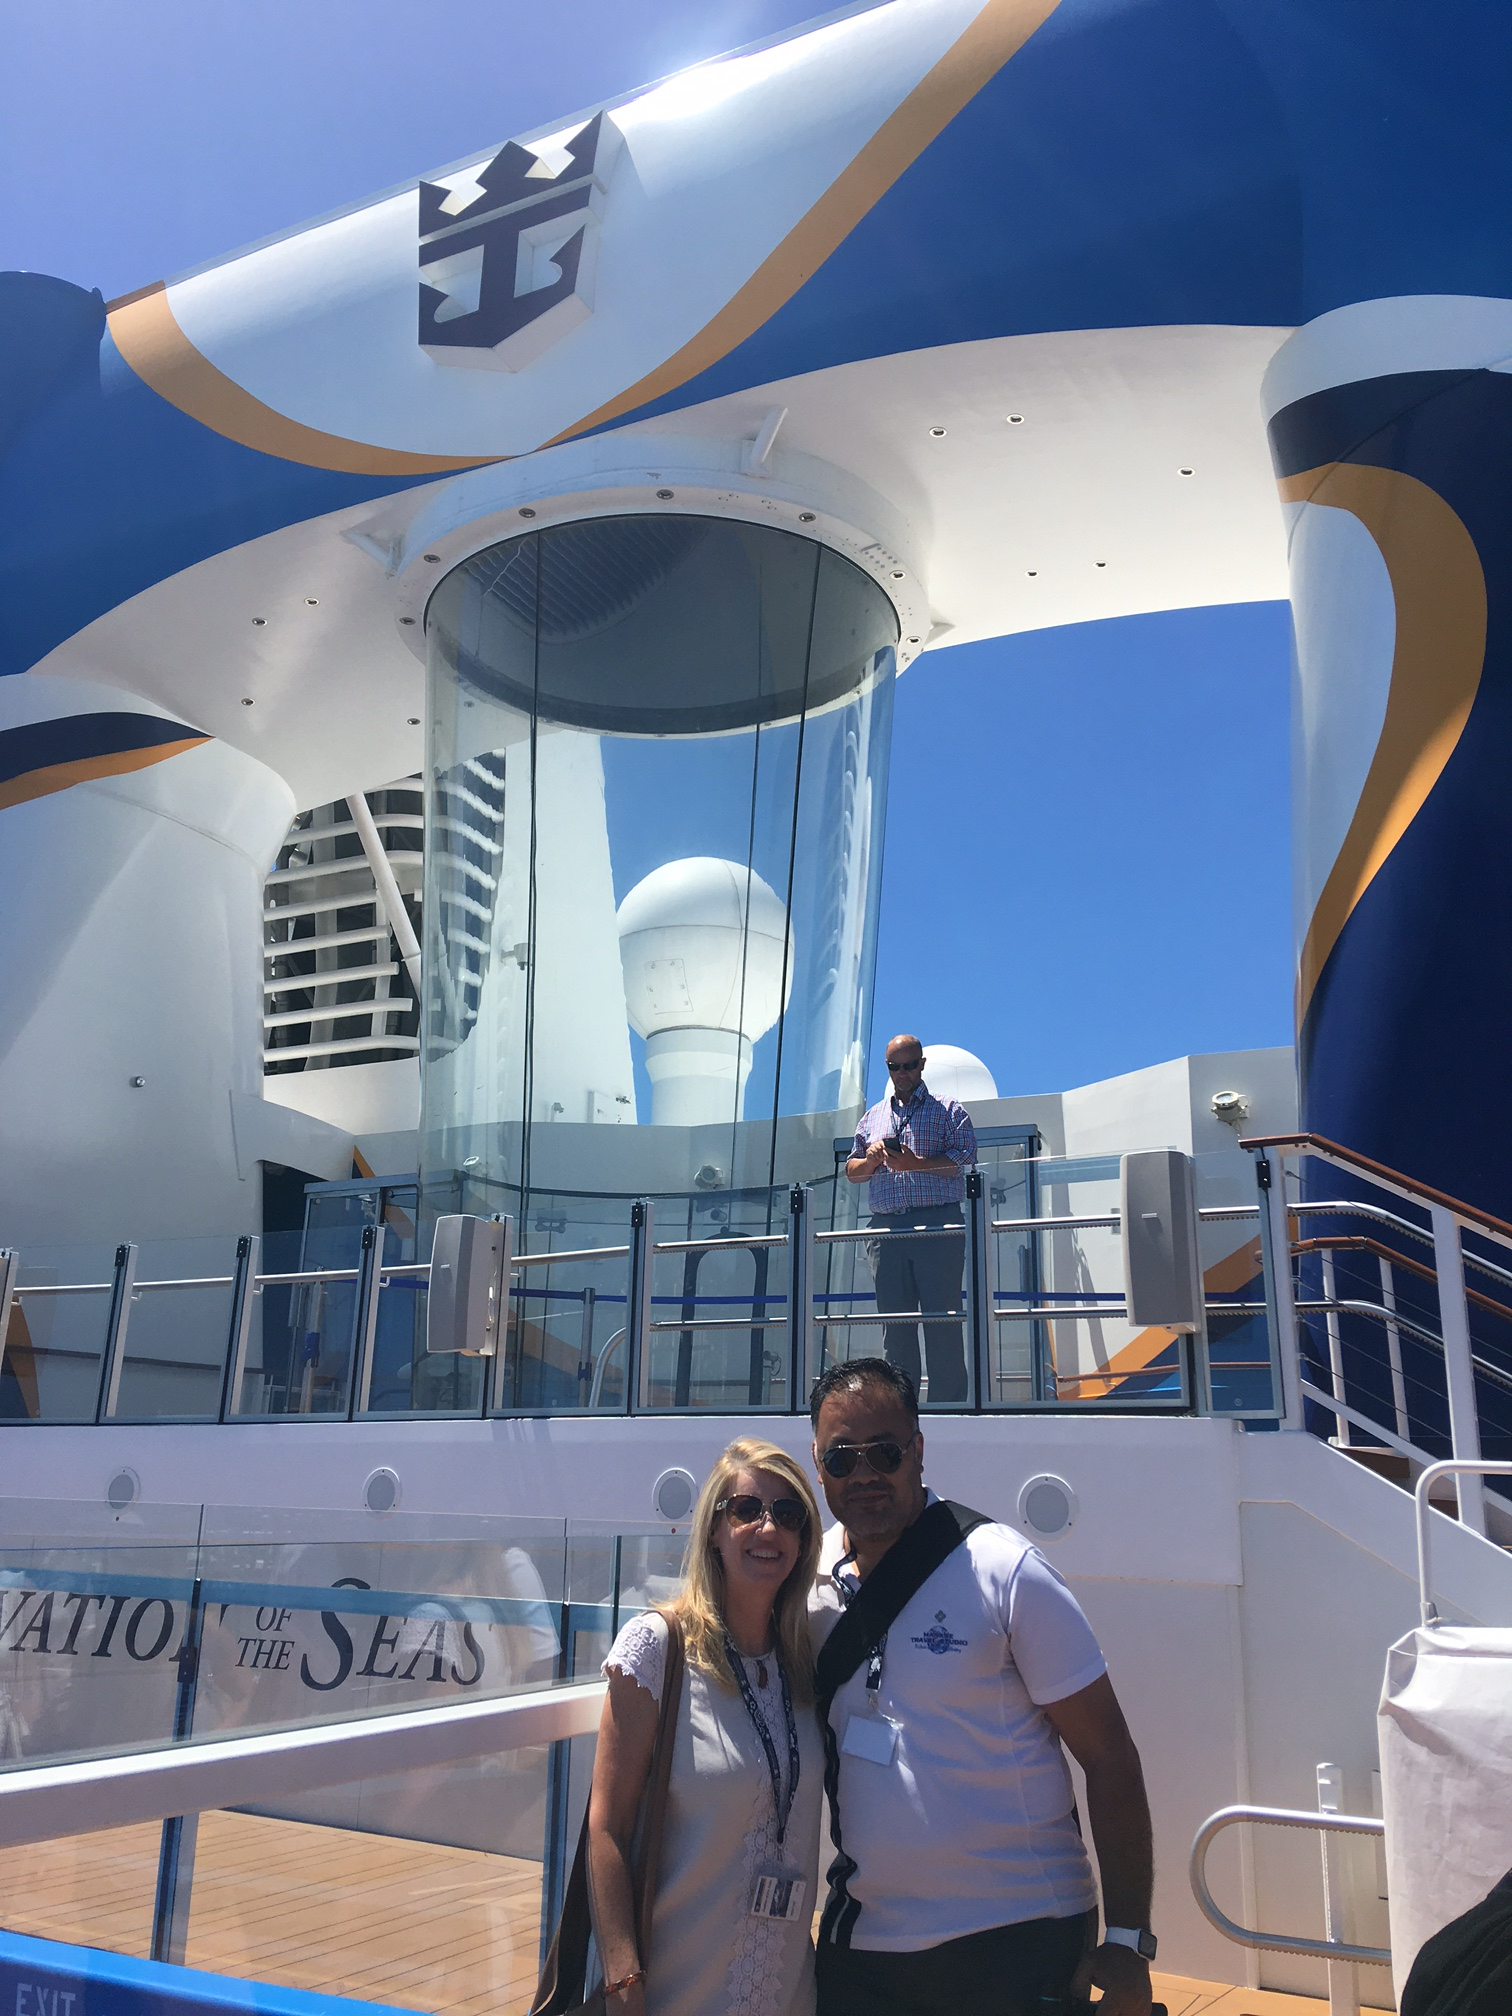 Ovation of the Seas_002.jpg